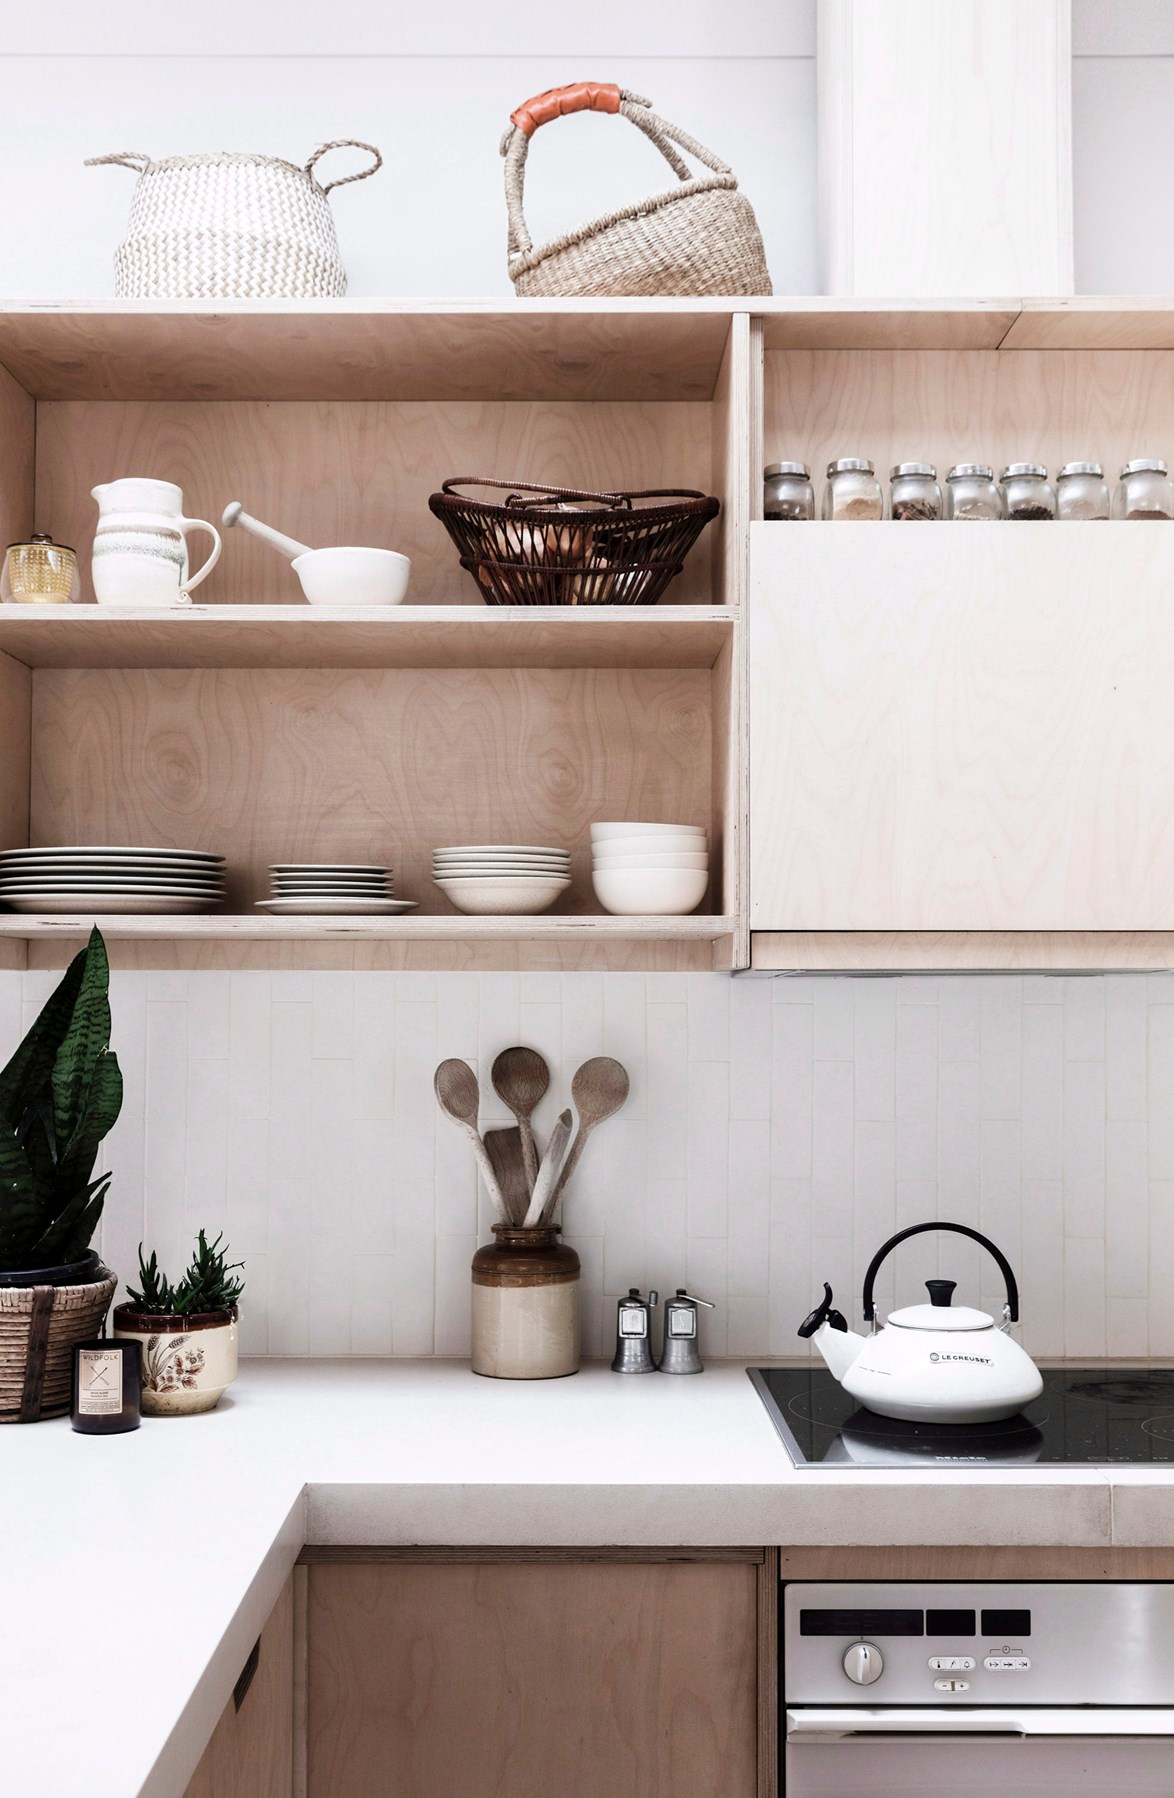 "Simple and affordable plywood shelving gives the kitchen in this [1970s-style bungalow](https://www.homestolove.com.au/a-1970s-byron-bay-bungalow-updated-with-hygge-style-6983|target=""_blank"") a no-fuss feel. All the overhead cabinetry is open, with all the most-used crockery and glassware on display."